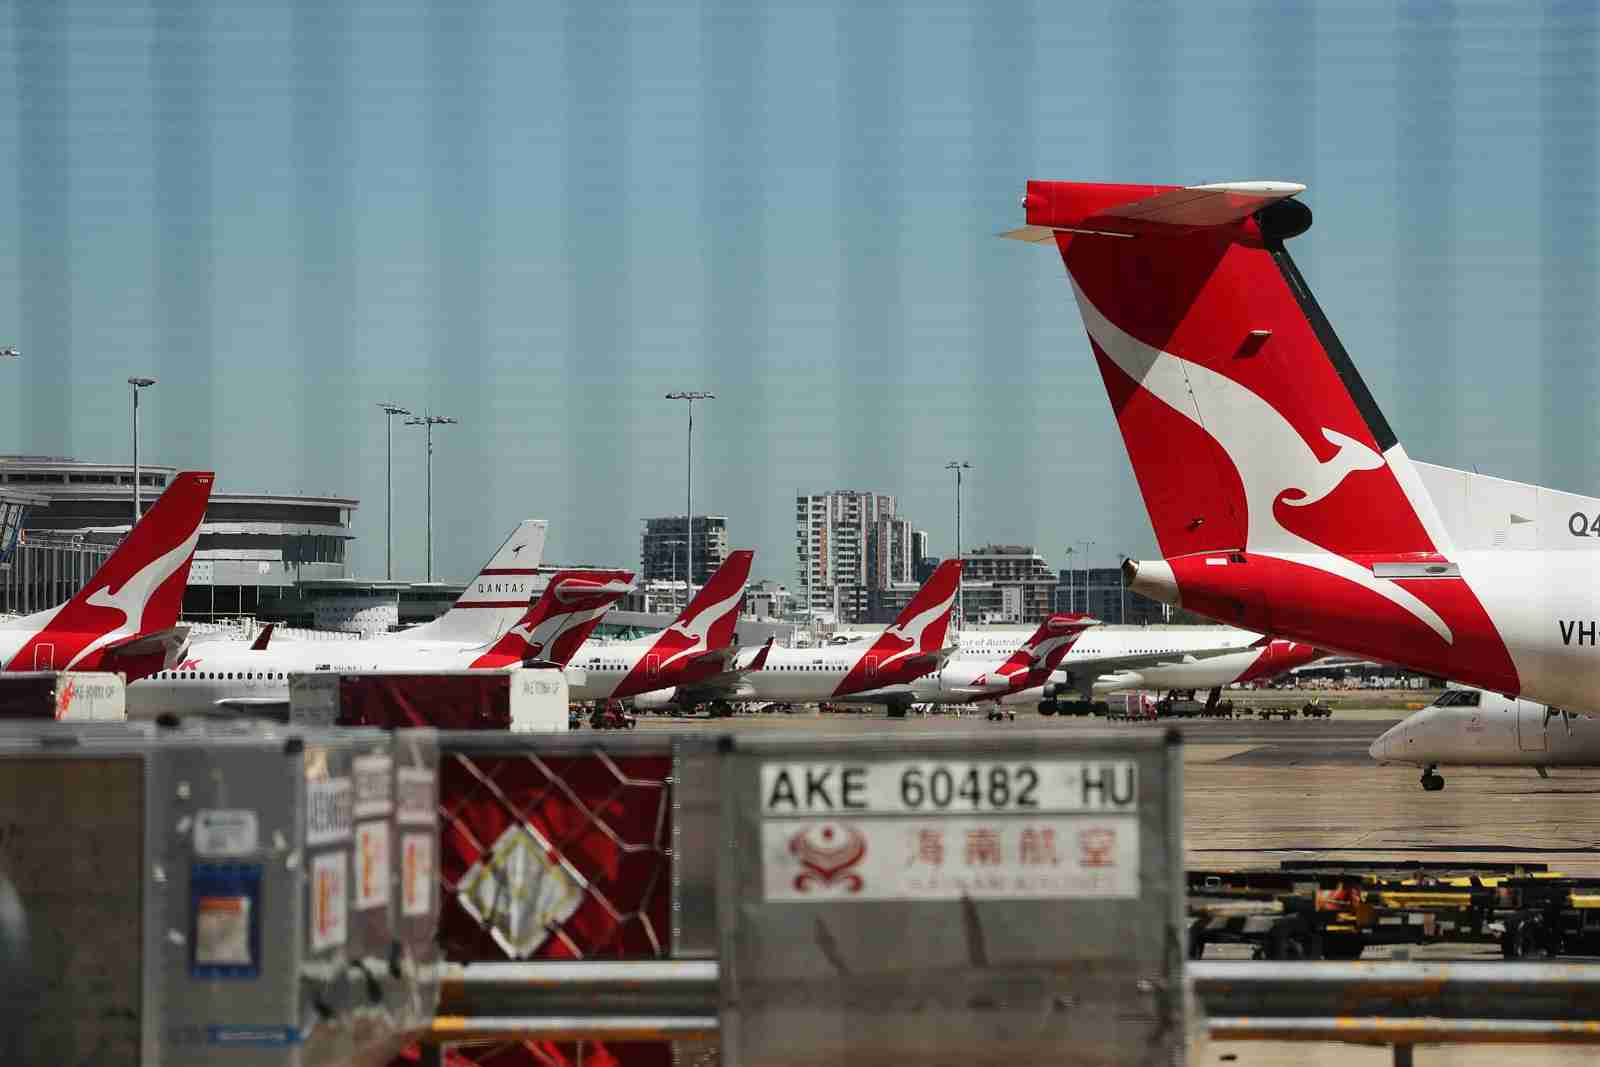 Qantas aircraft parked at Sydney Airport. (Photo by Mark Metcalfe/Getty Images)